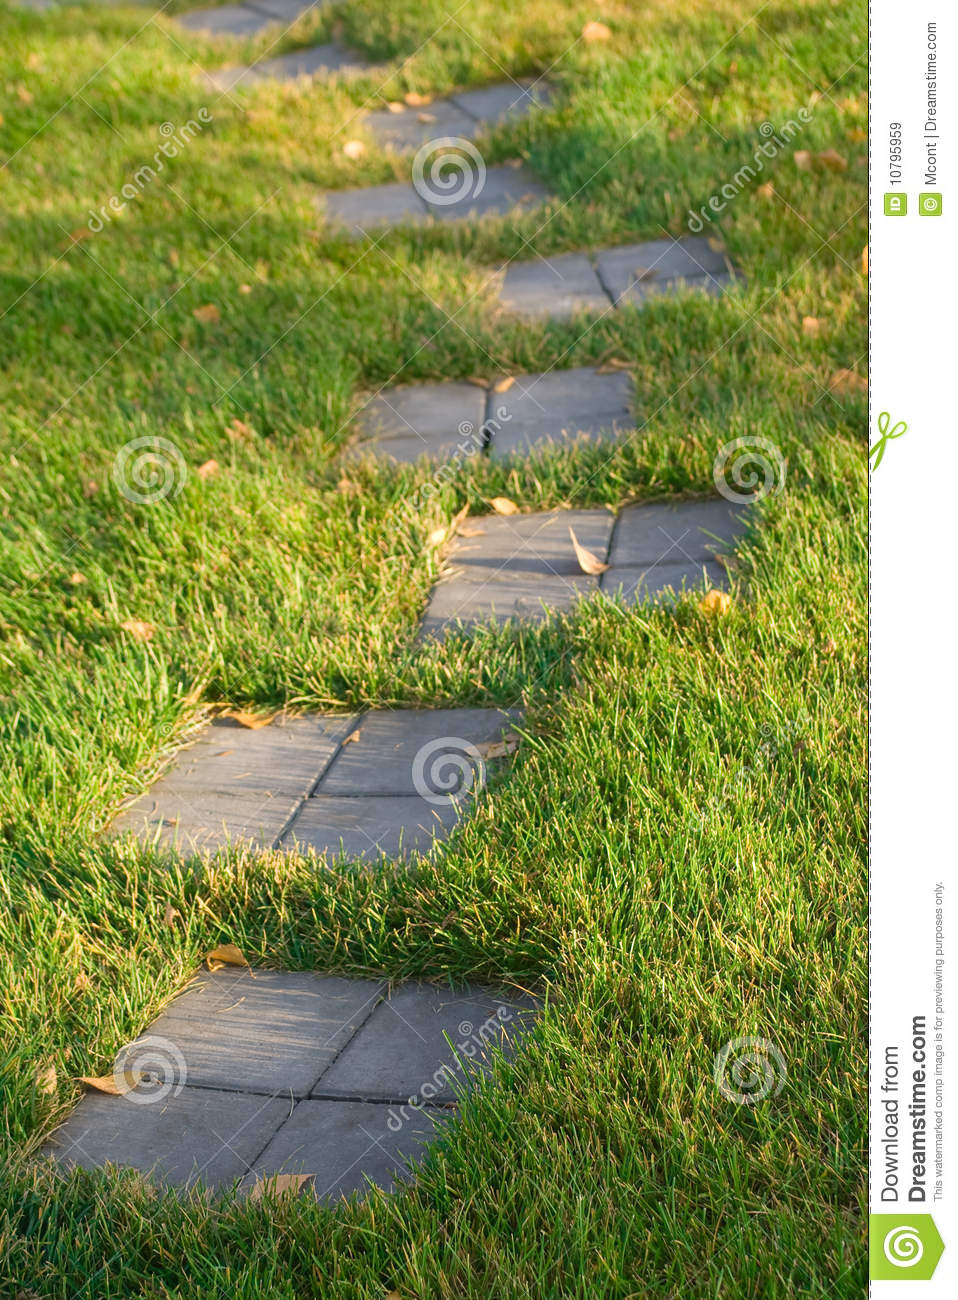 Stepping stone path on grass stock image image 10795959 for Stone path in grass